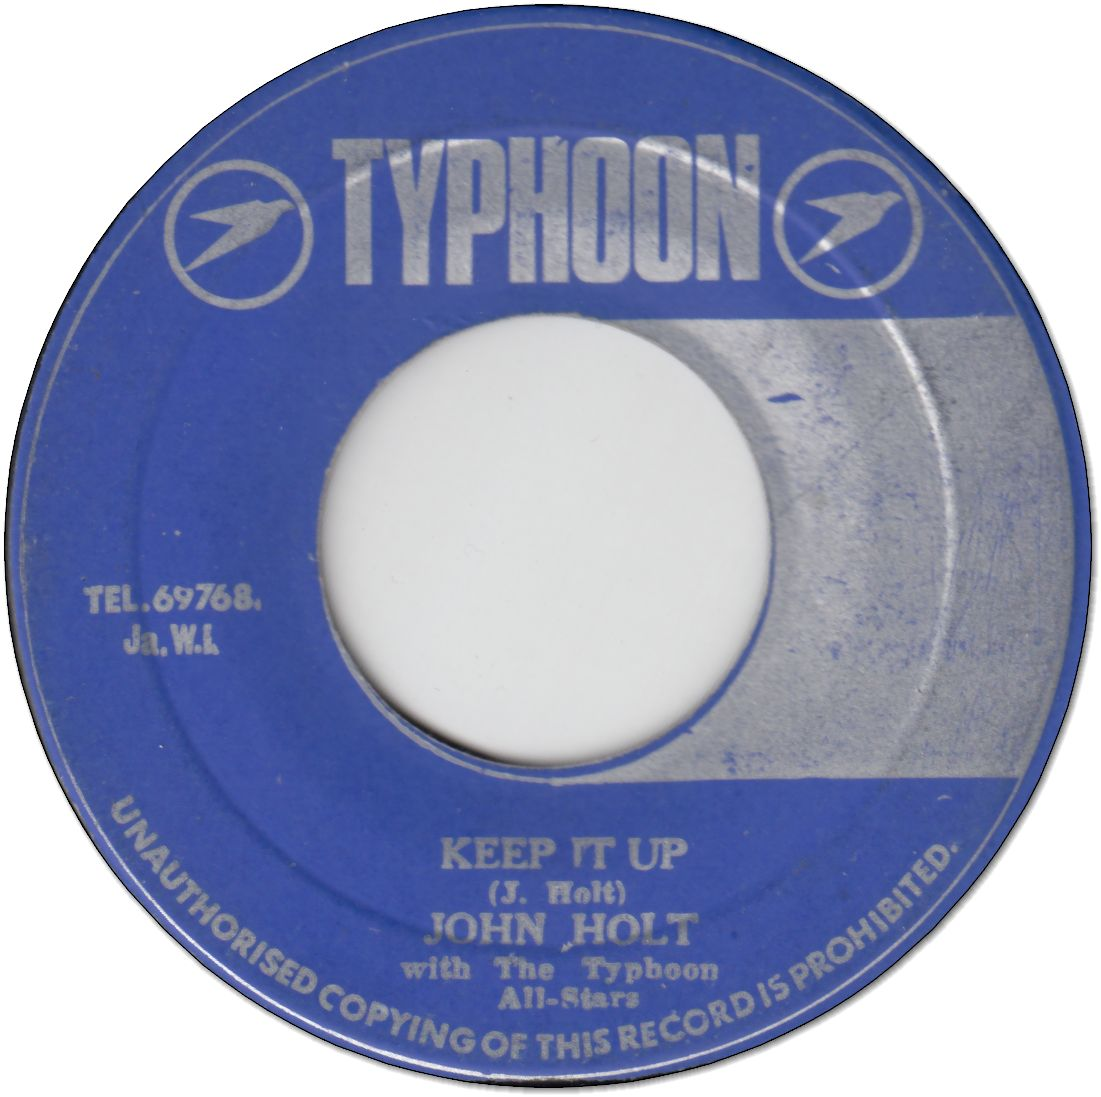 KEEP IT UP (VG to VG+) / A LOVE LIKE YOURS (VG+)